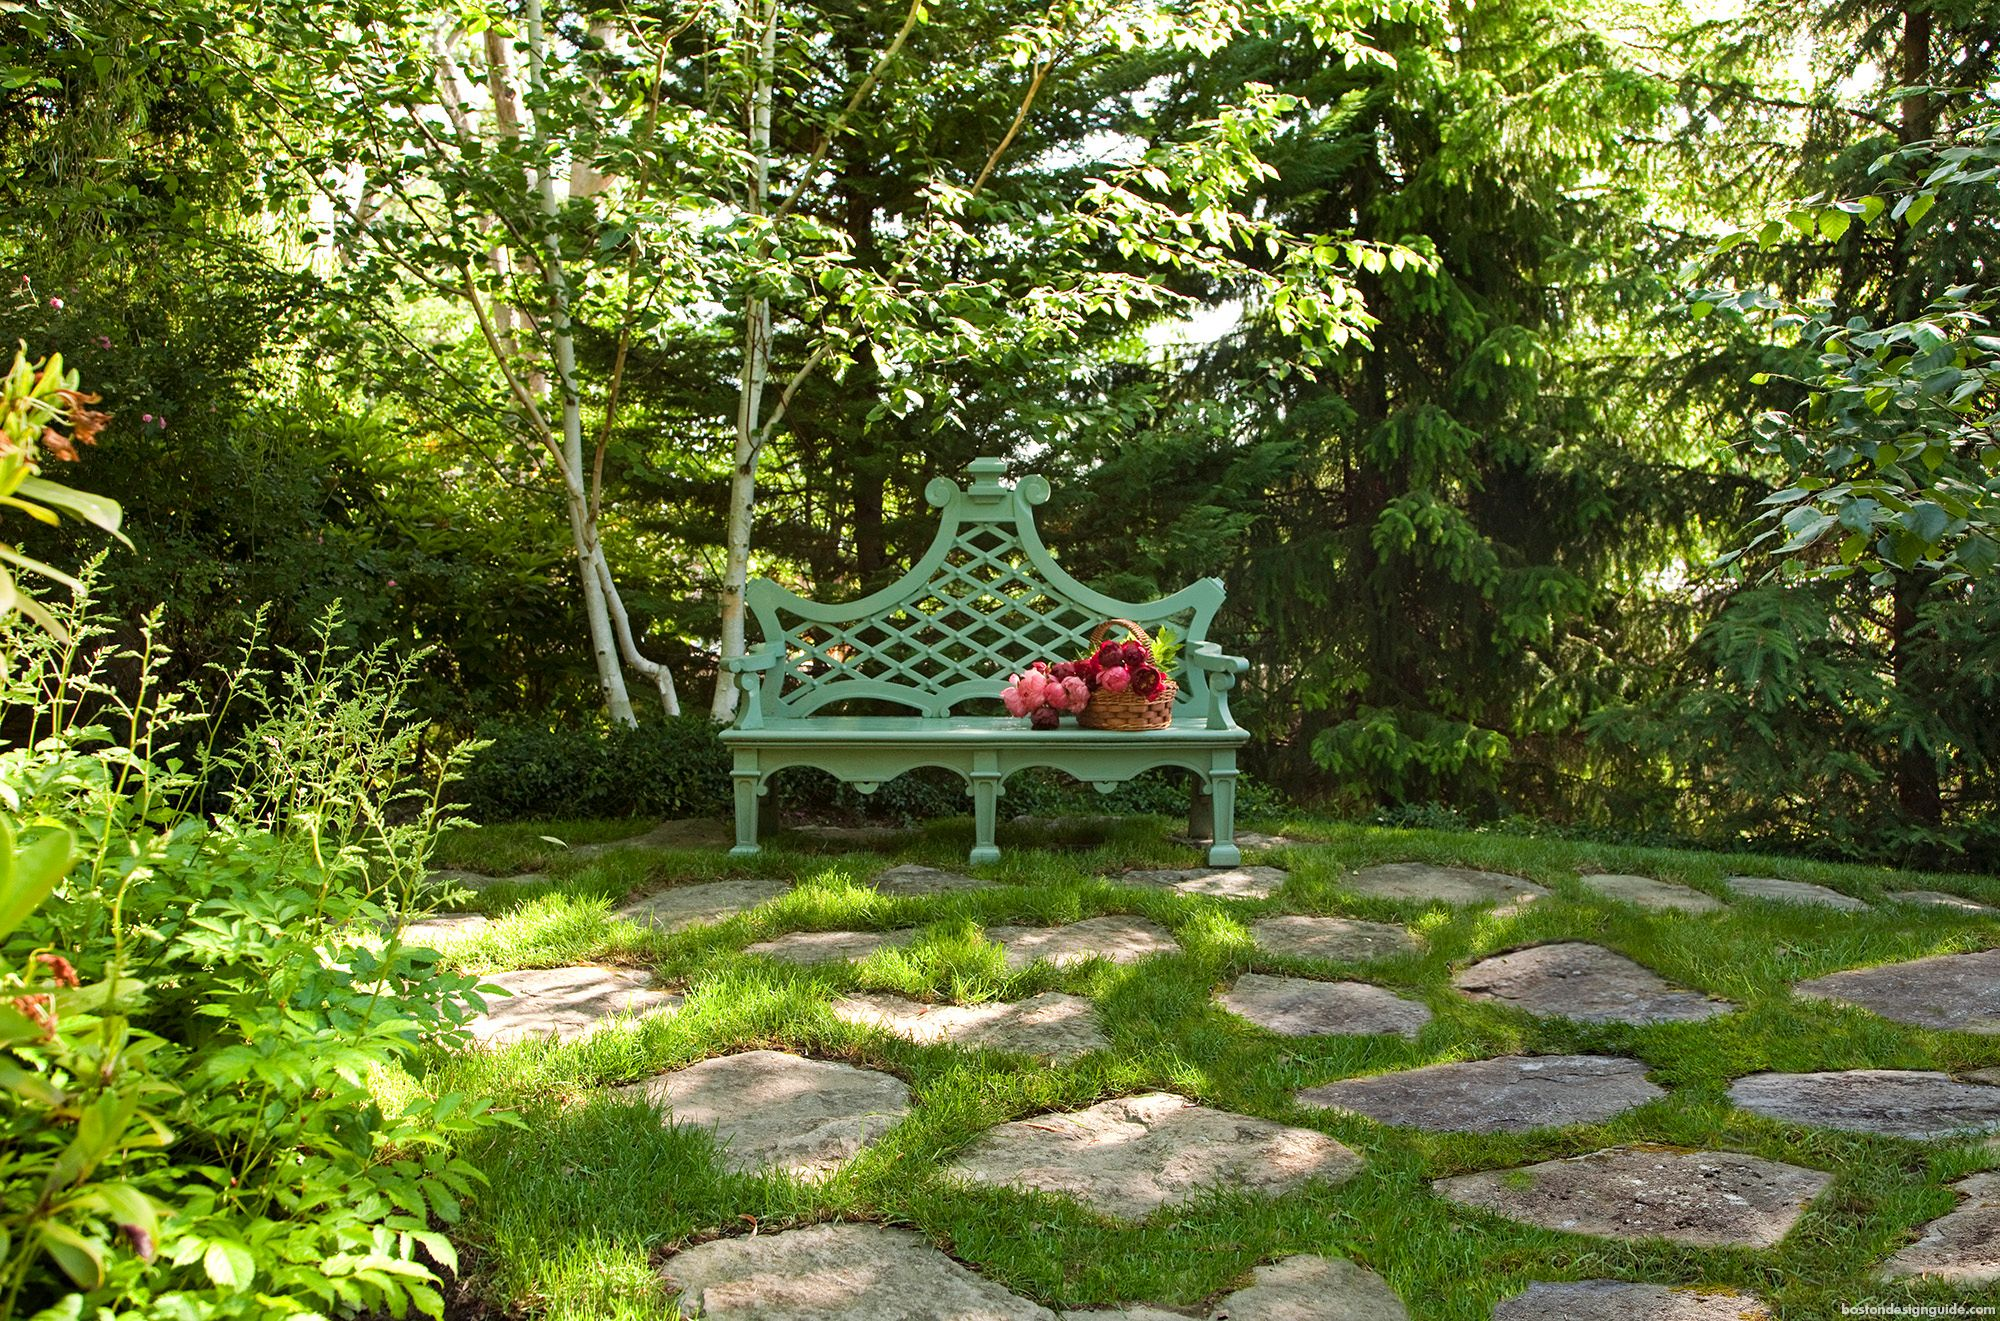 Landscape design by Gregory Lombardi Design; landscape contractor R.P. Marzilli & Company; photo by Eric Roth